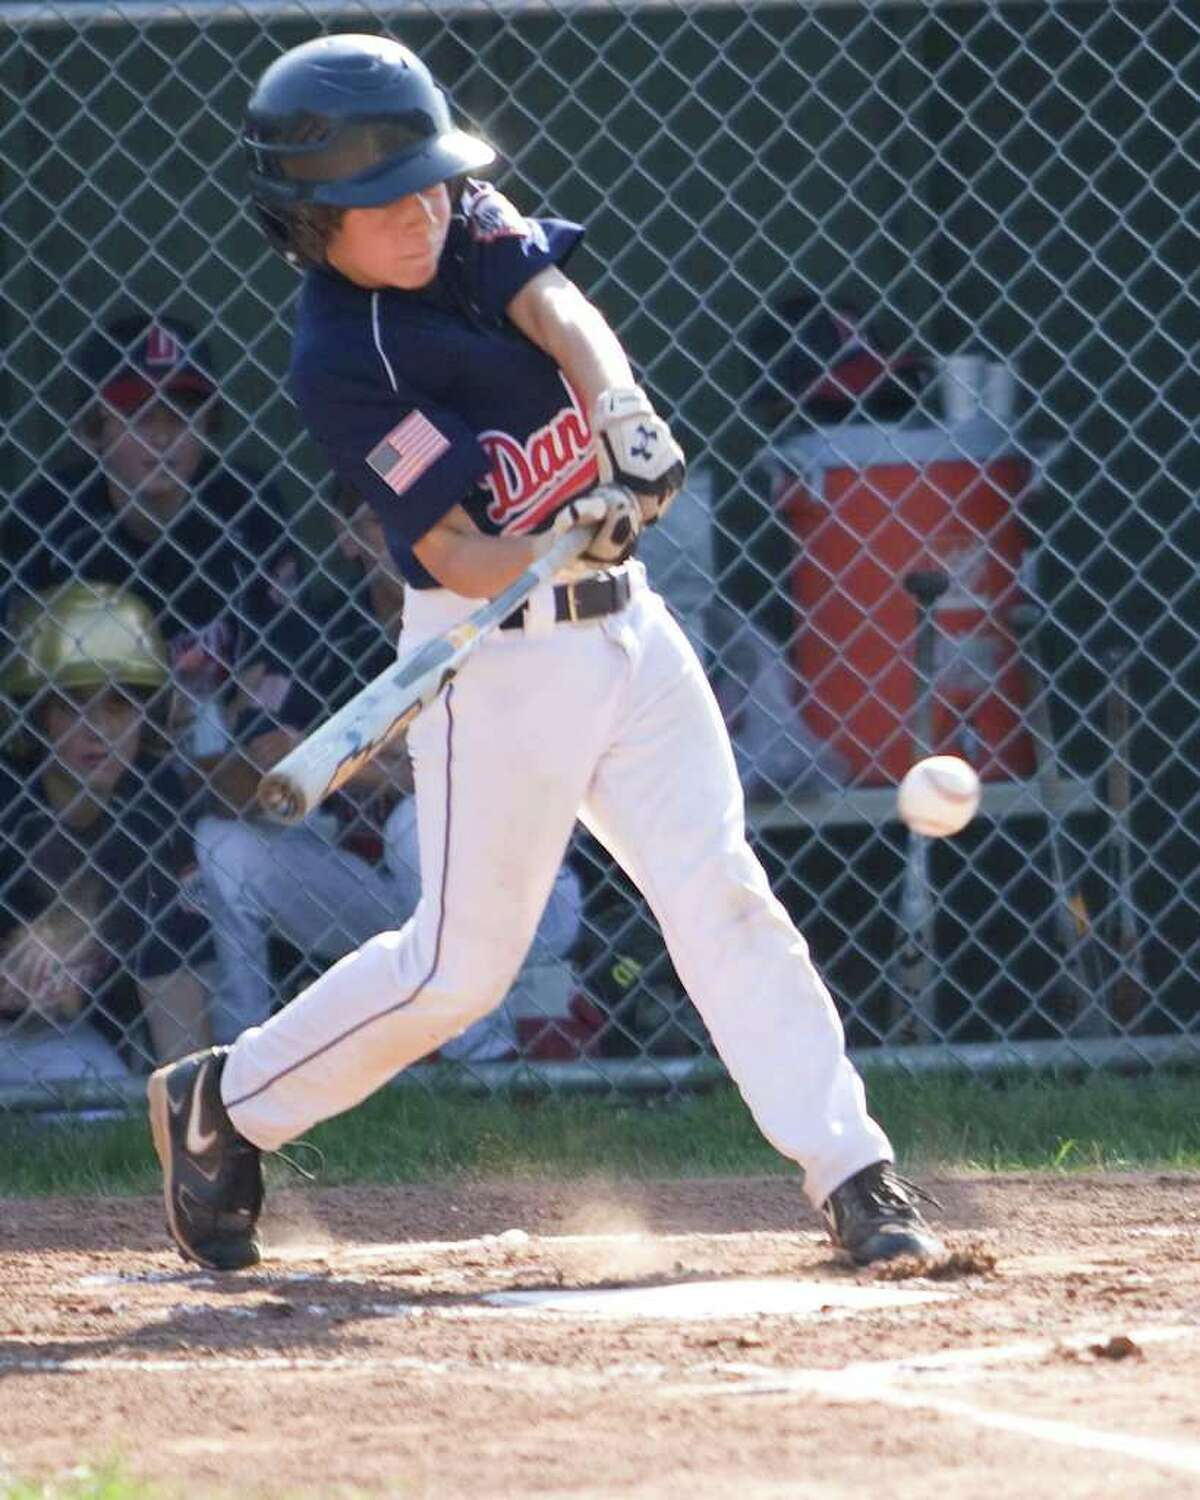 Danbury's Brent Jacobellis strokes a single to right against Exeter, N.H., during Cal Ripken 11-year-old New England Regional Tournament play Wednesday in New Milford.